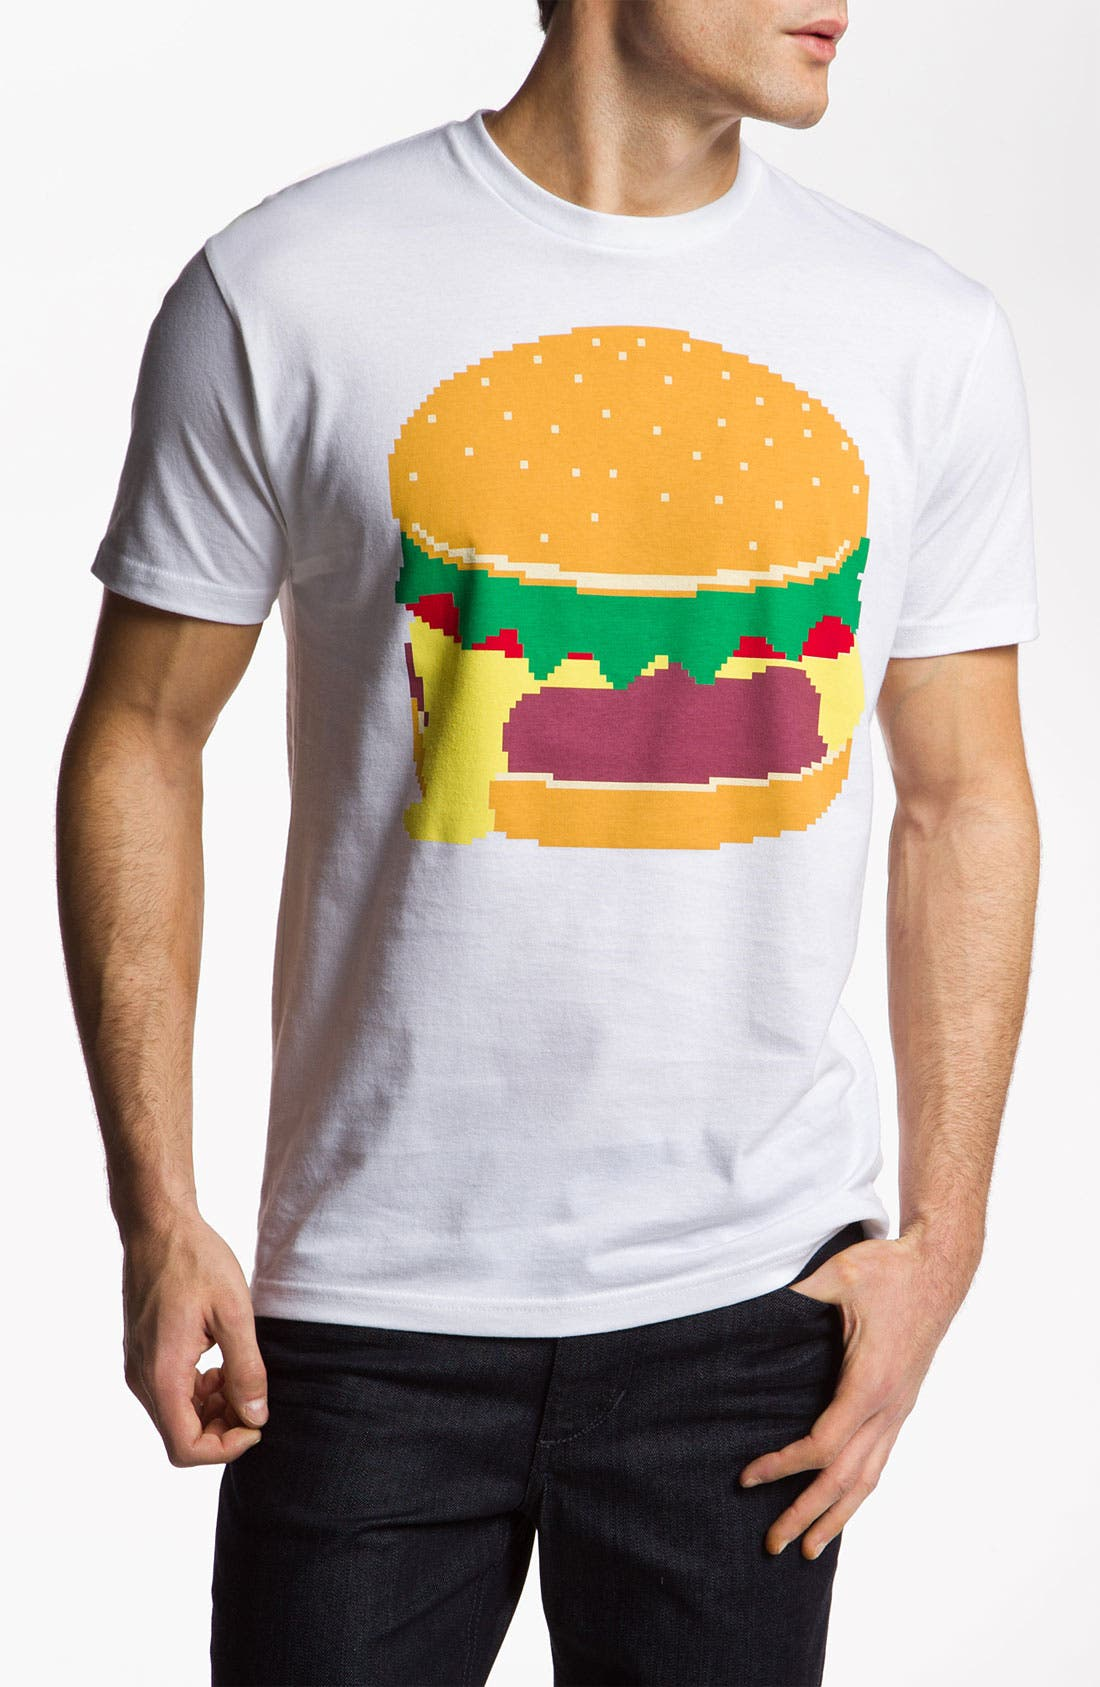 Alternate Image 1 Selected - Kid Dangerous Grime Couture 'Cheeseburger' Graphic T-Shirt